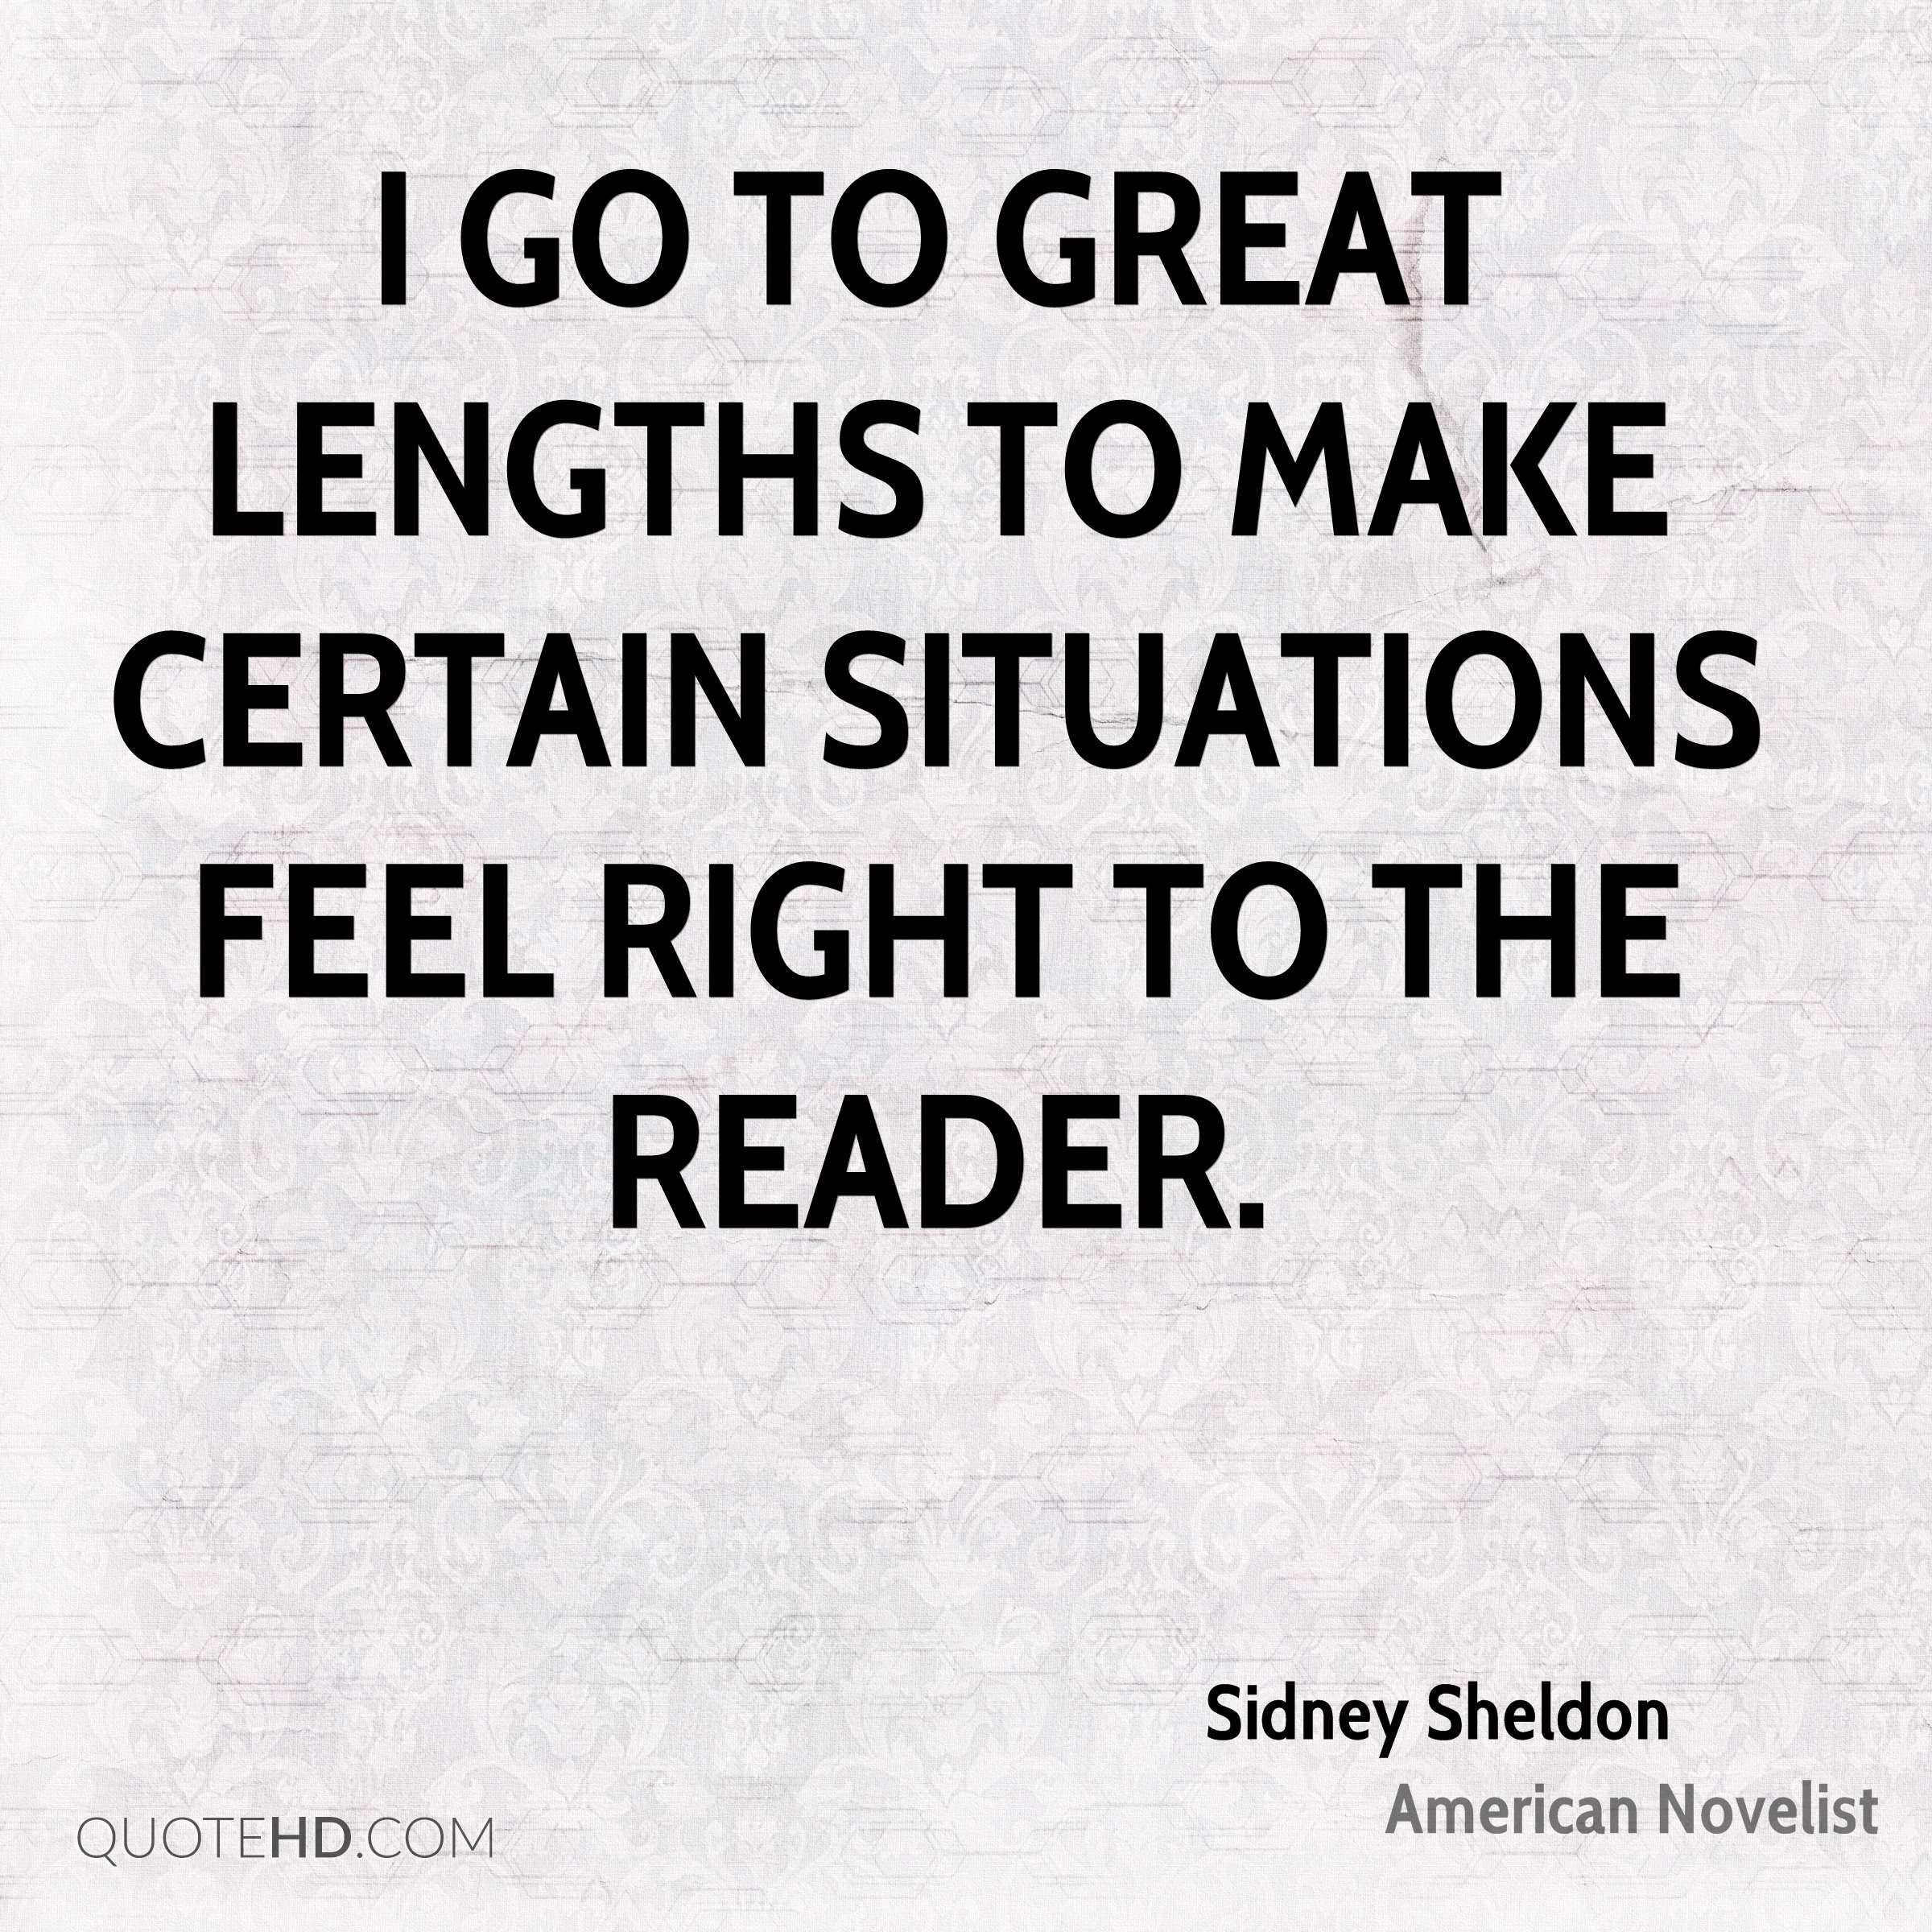 I go to great lengths to make certain situations feel right to the reader.